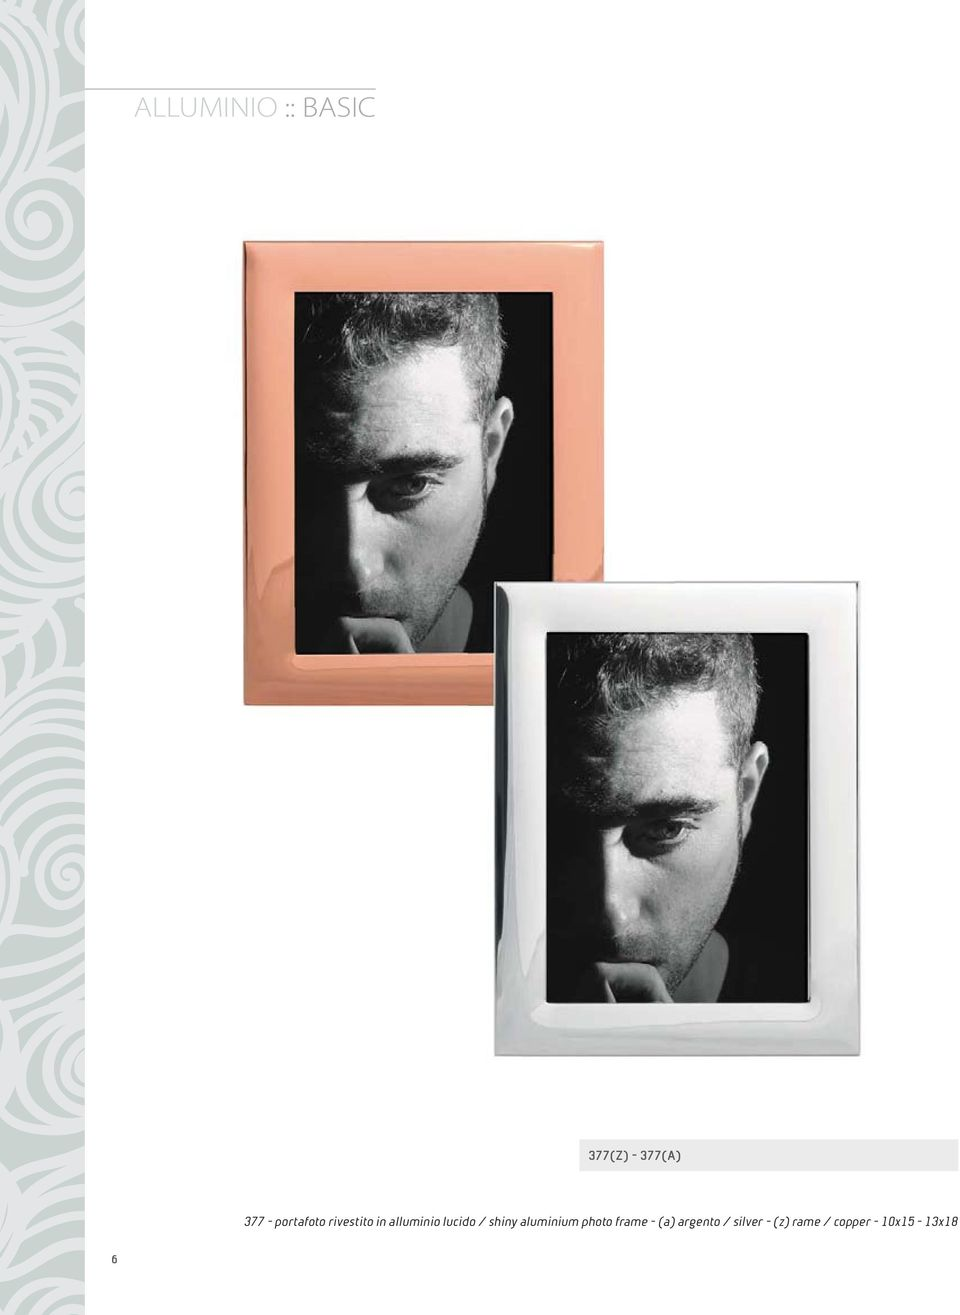 shiny aluminium photo frame - (a) argento